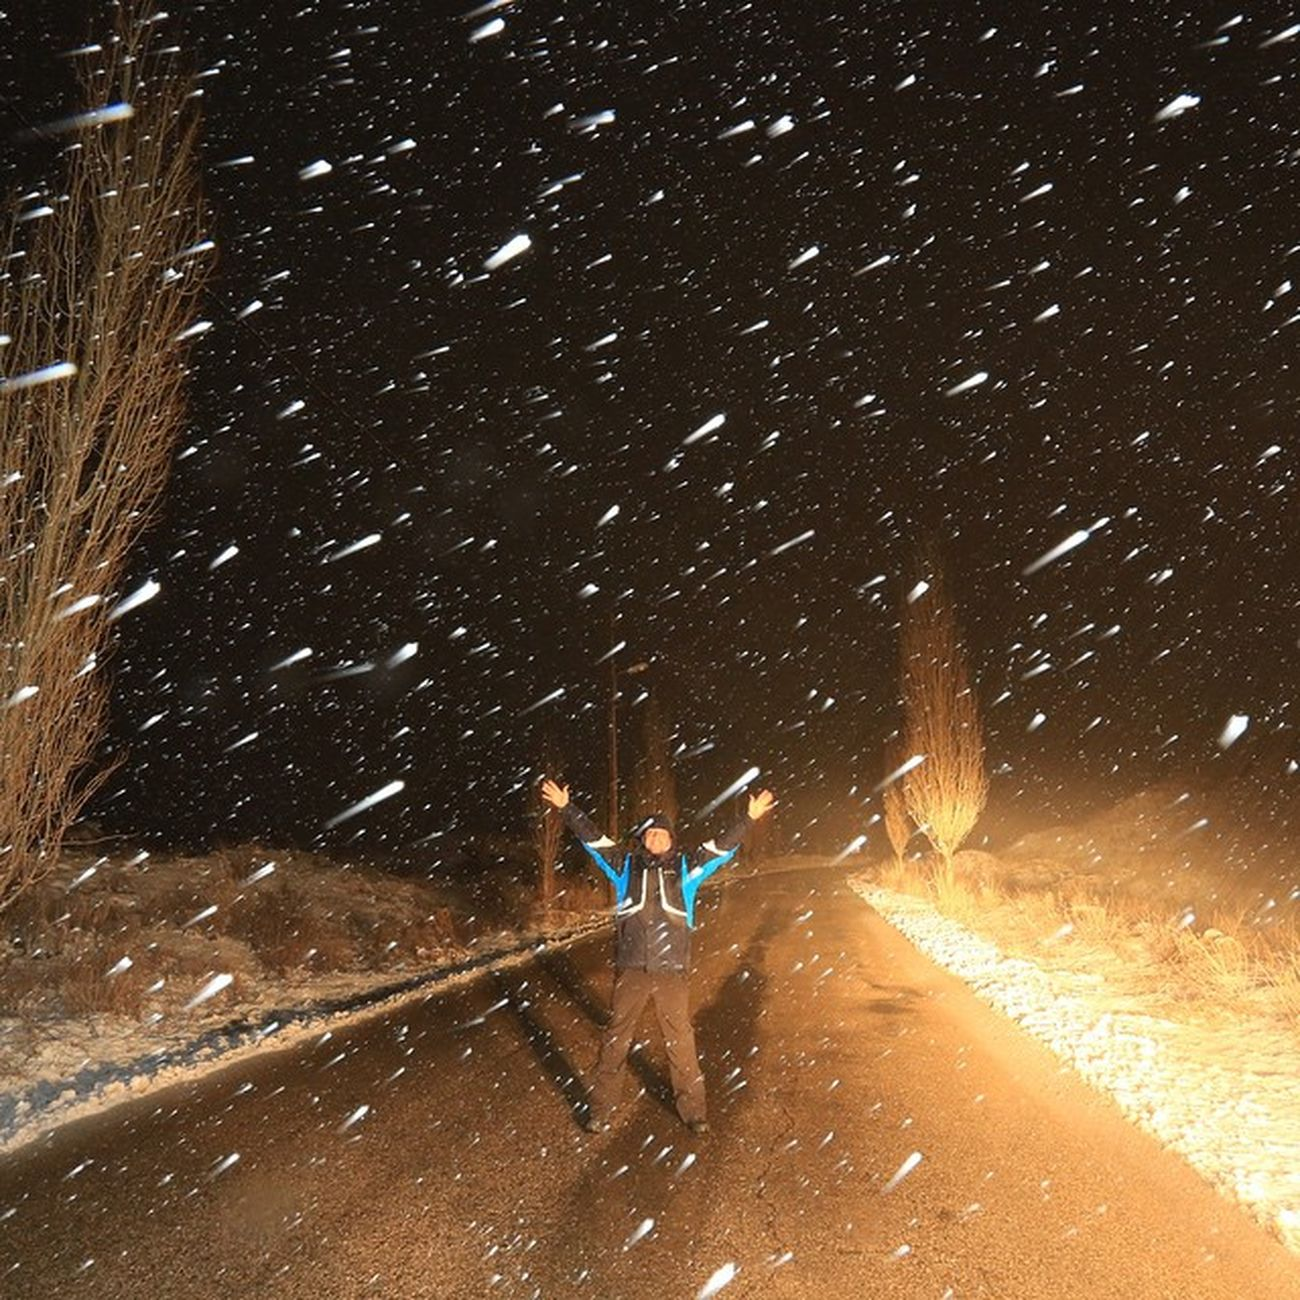 Lebanese#lebanon#arez#snowing#night#rainjng#light#trailing#long#exposure#cedars#tree#forest#me